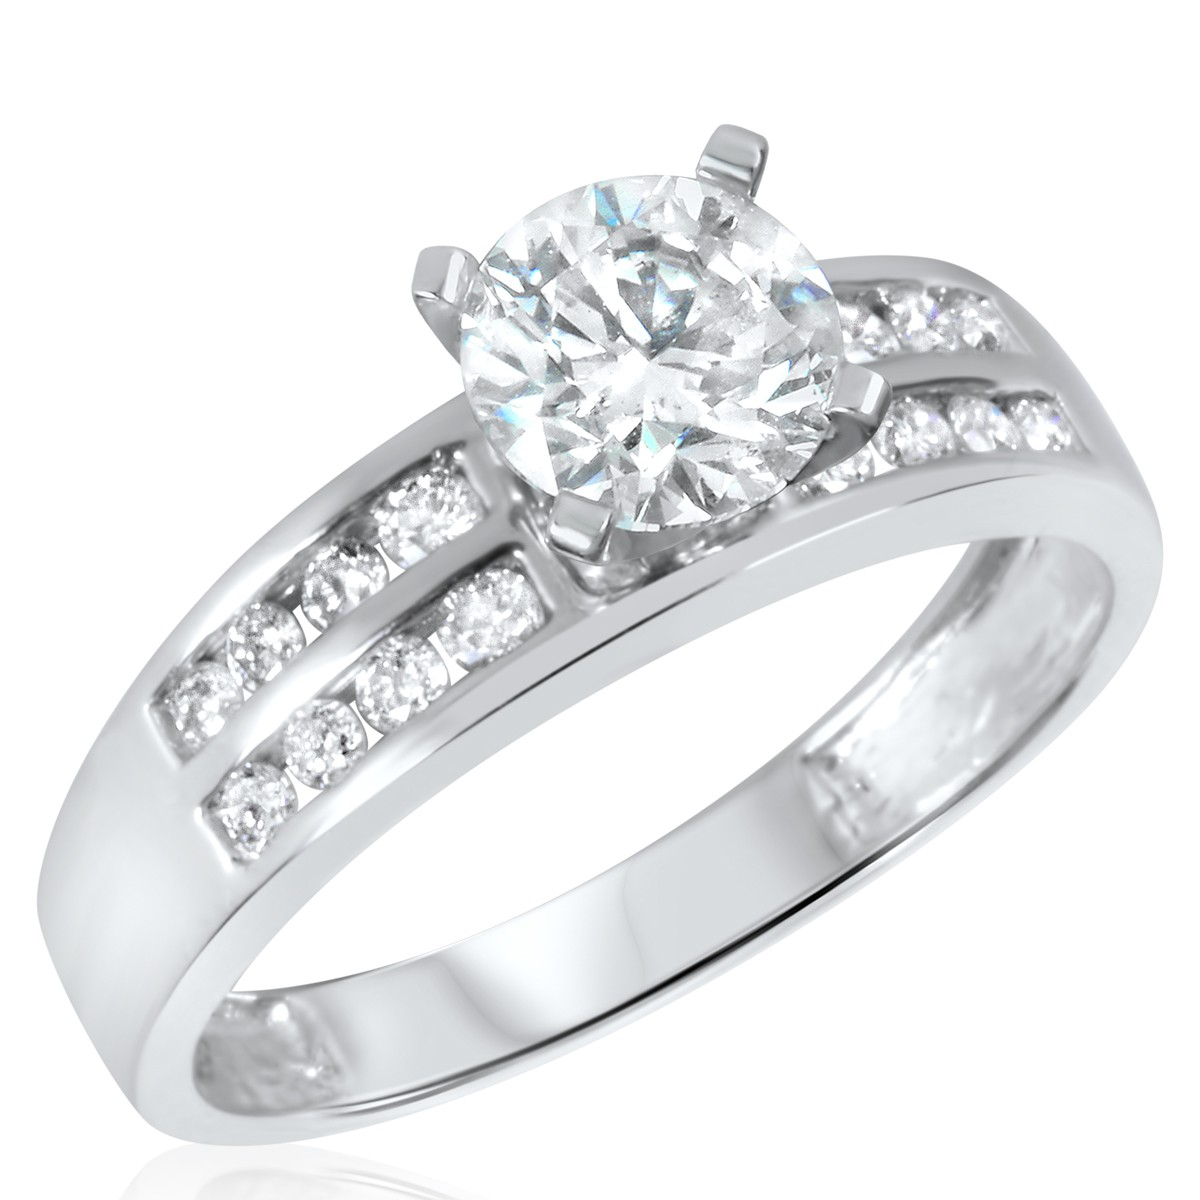 1 1/3 CT. T.W. Diamond Ladies Engagement Ring 14K White Gold